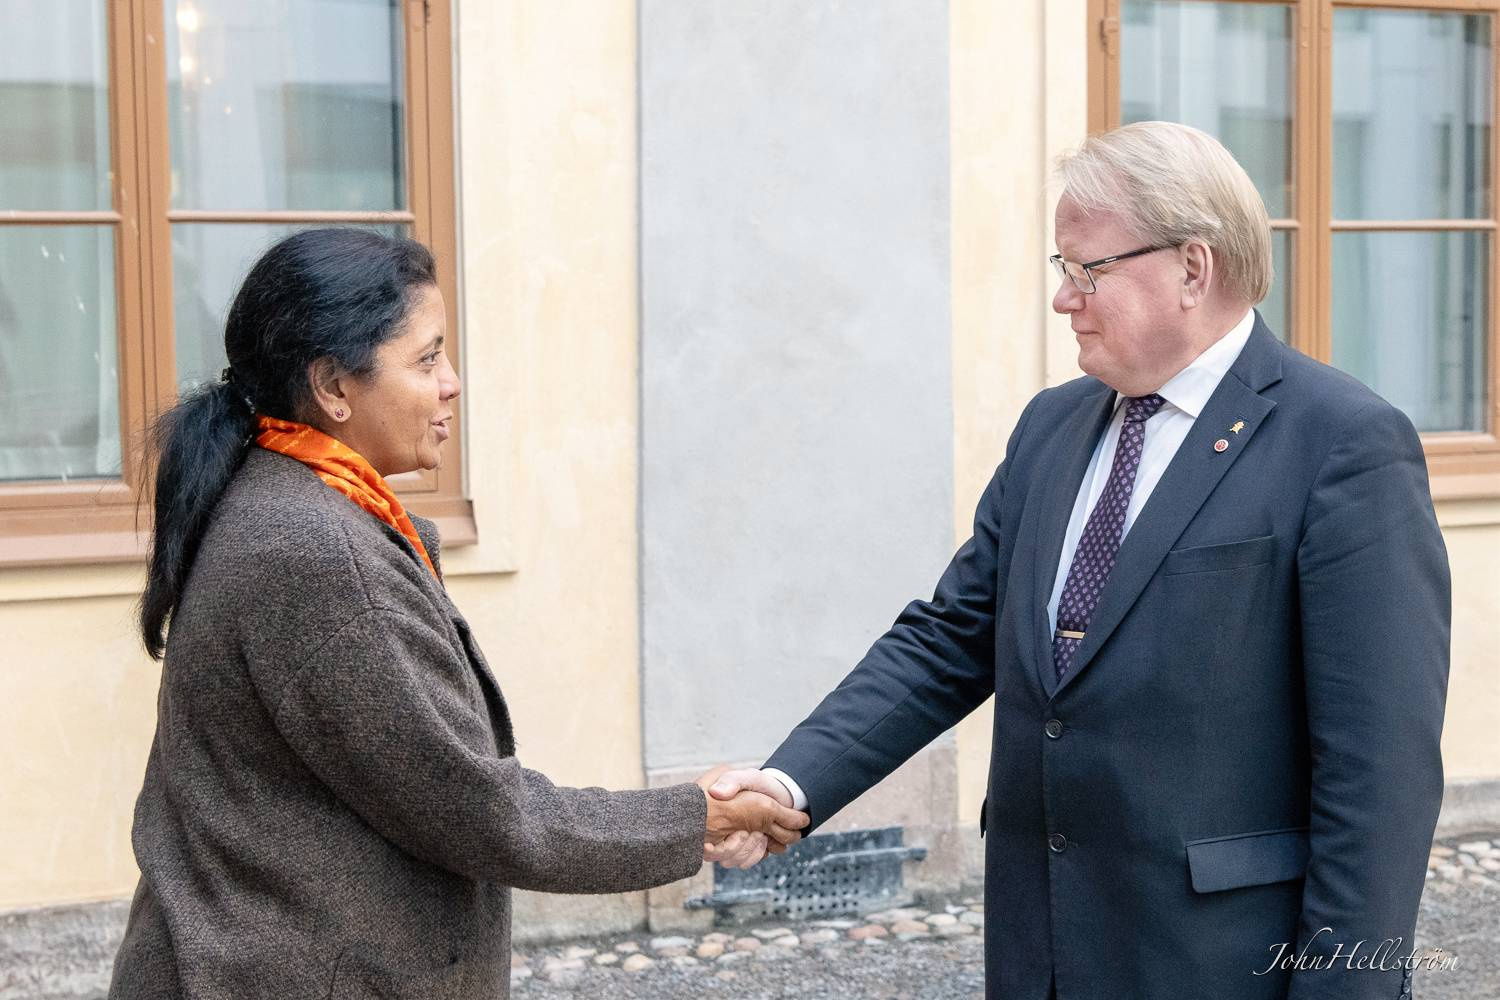 Embassy-of-India-Defence-Minister-Sweden-37.jpg